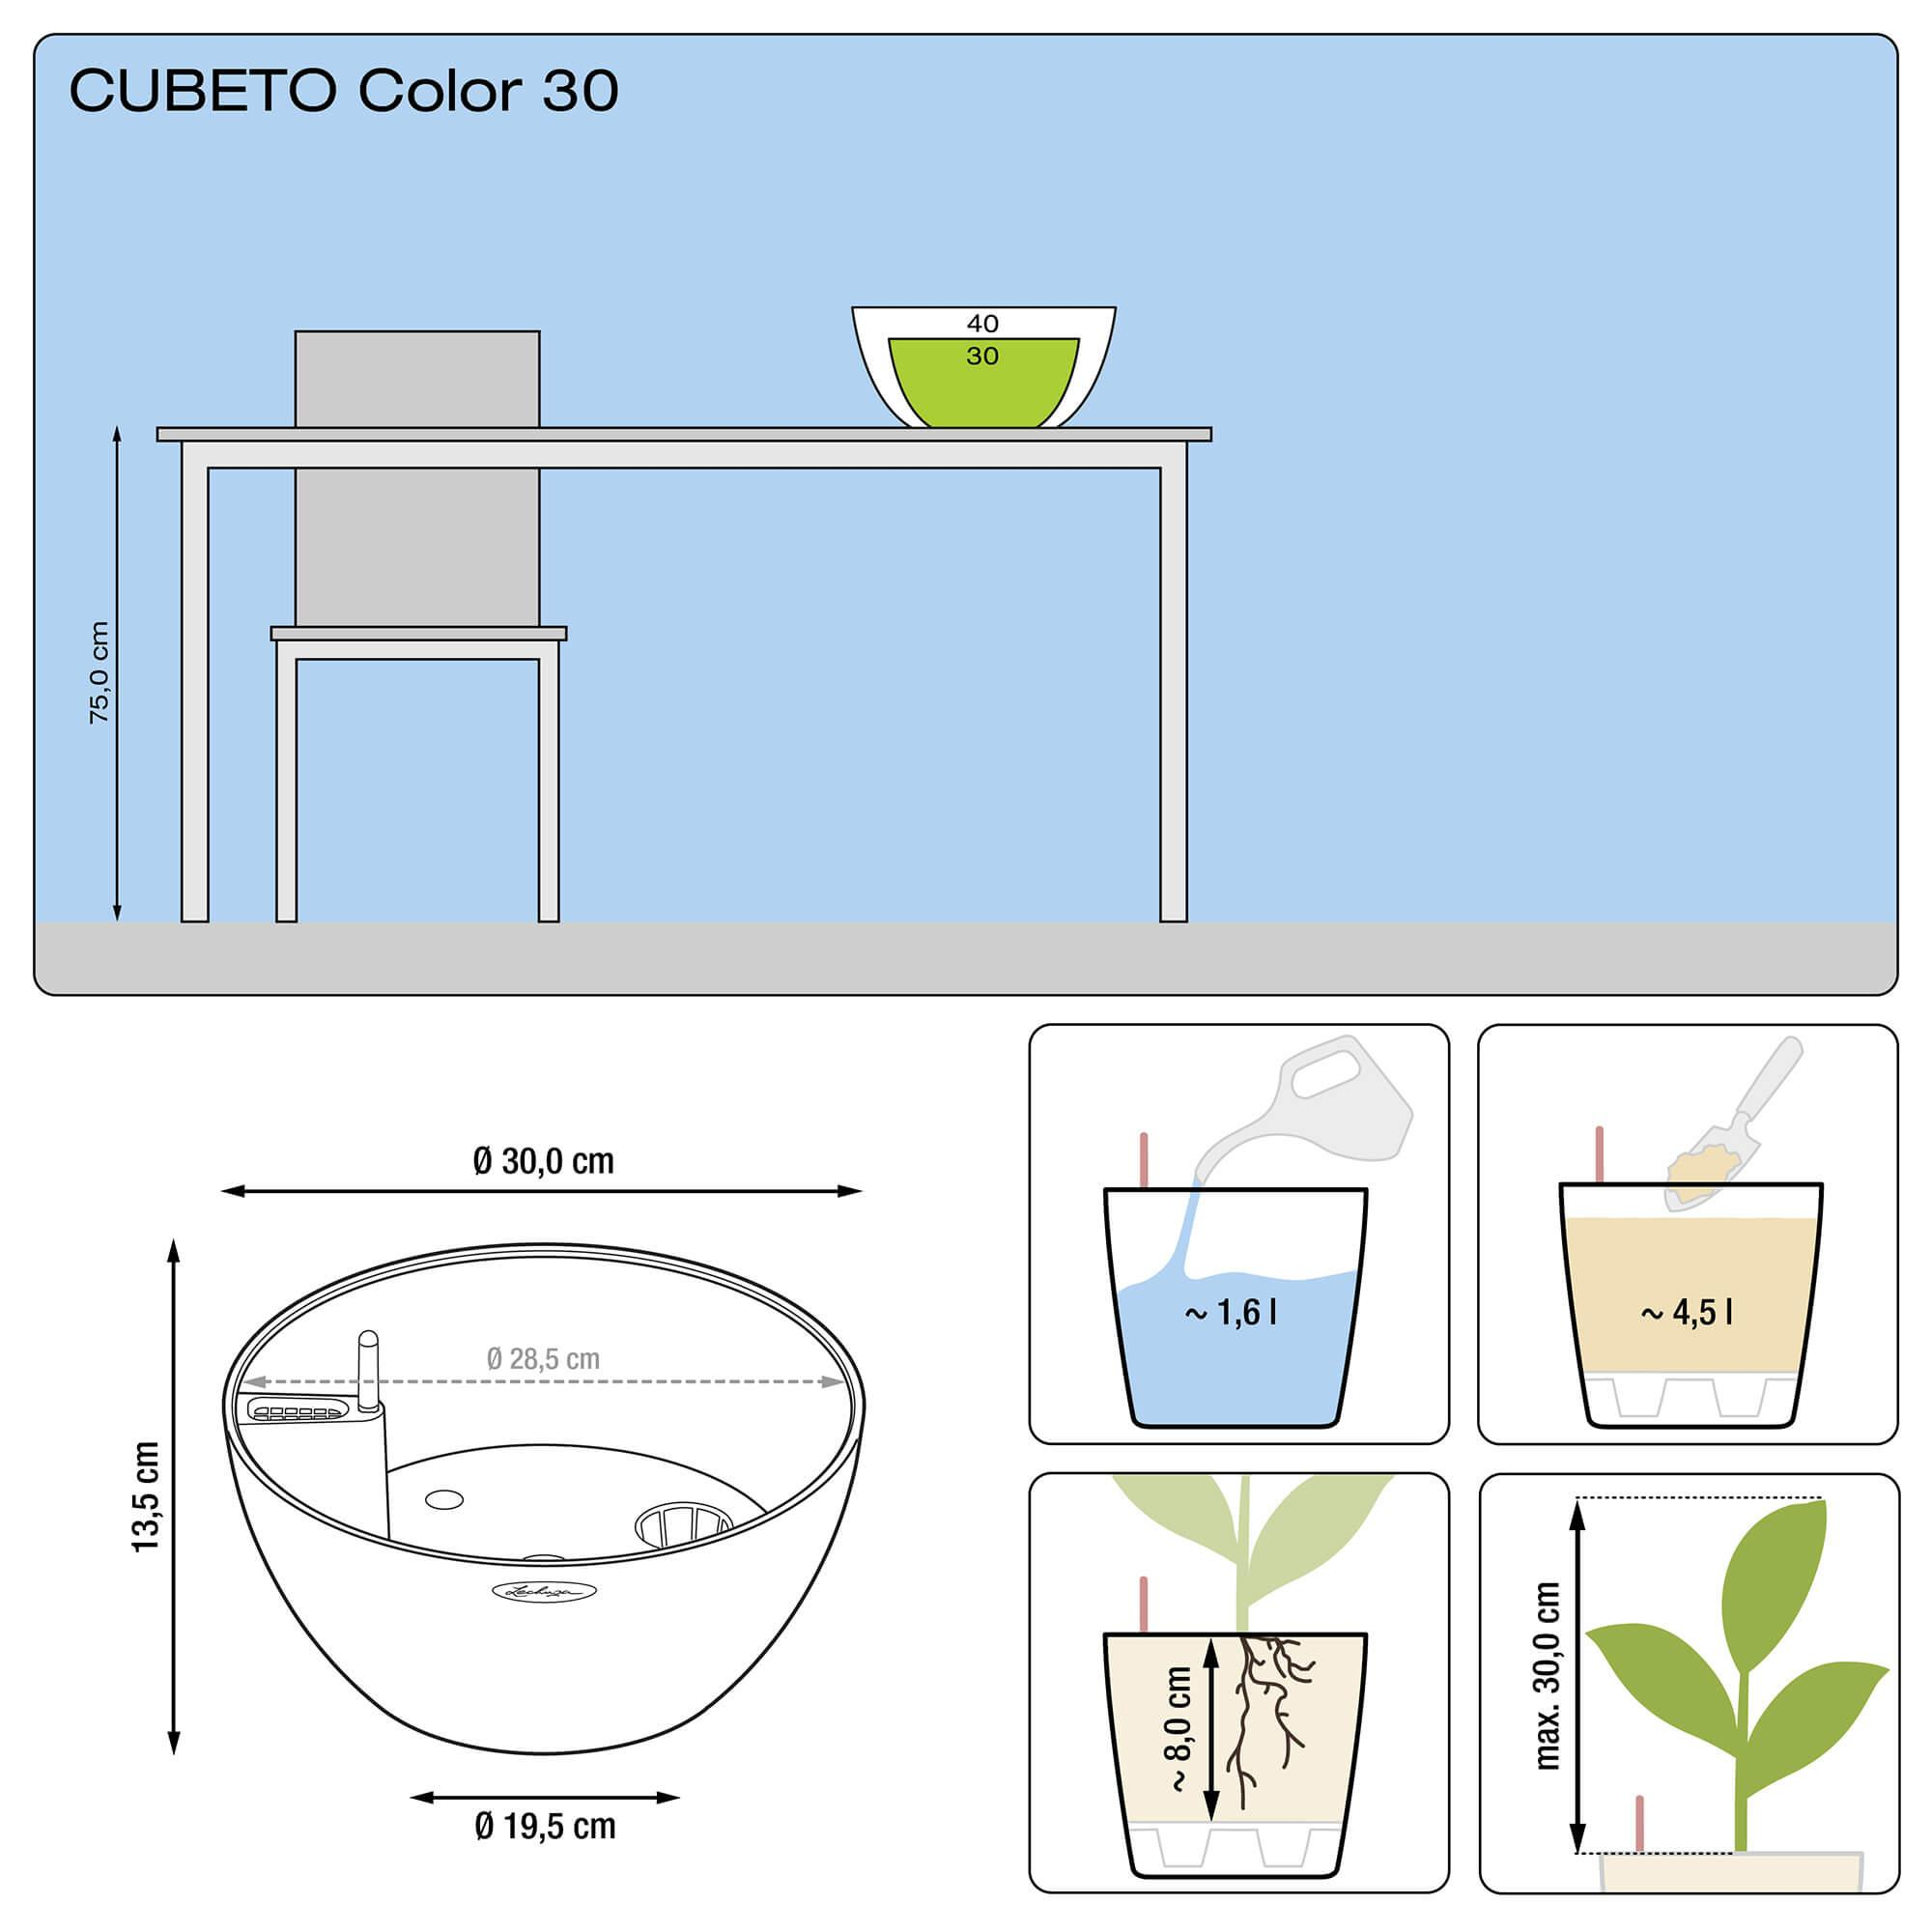 le_cubeto-color30_product_addi_nz